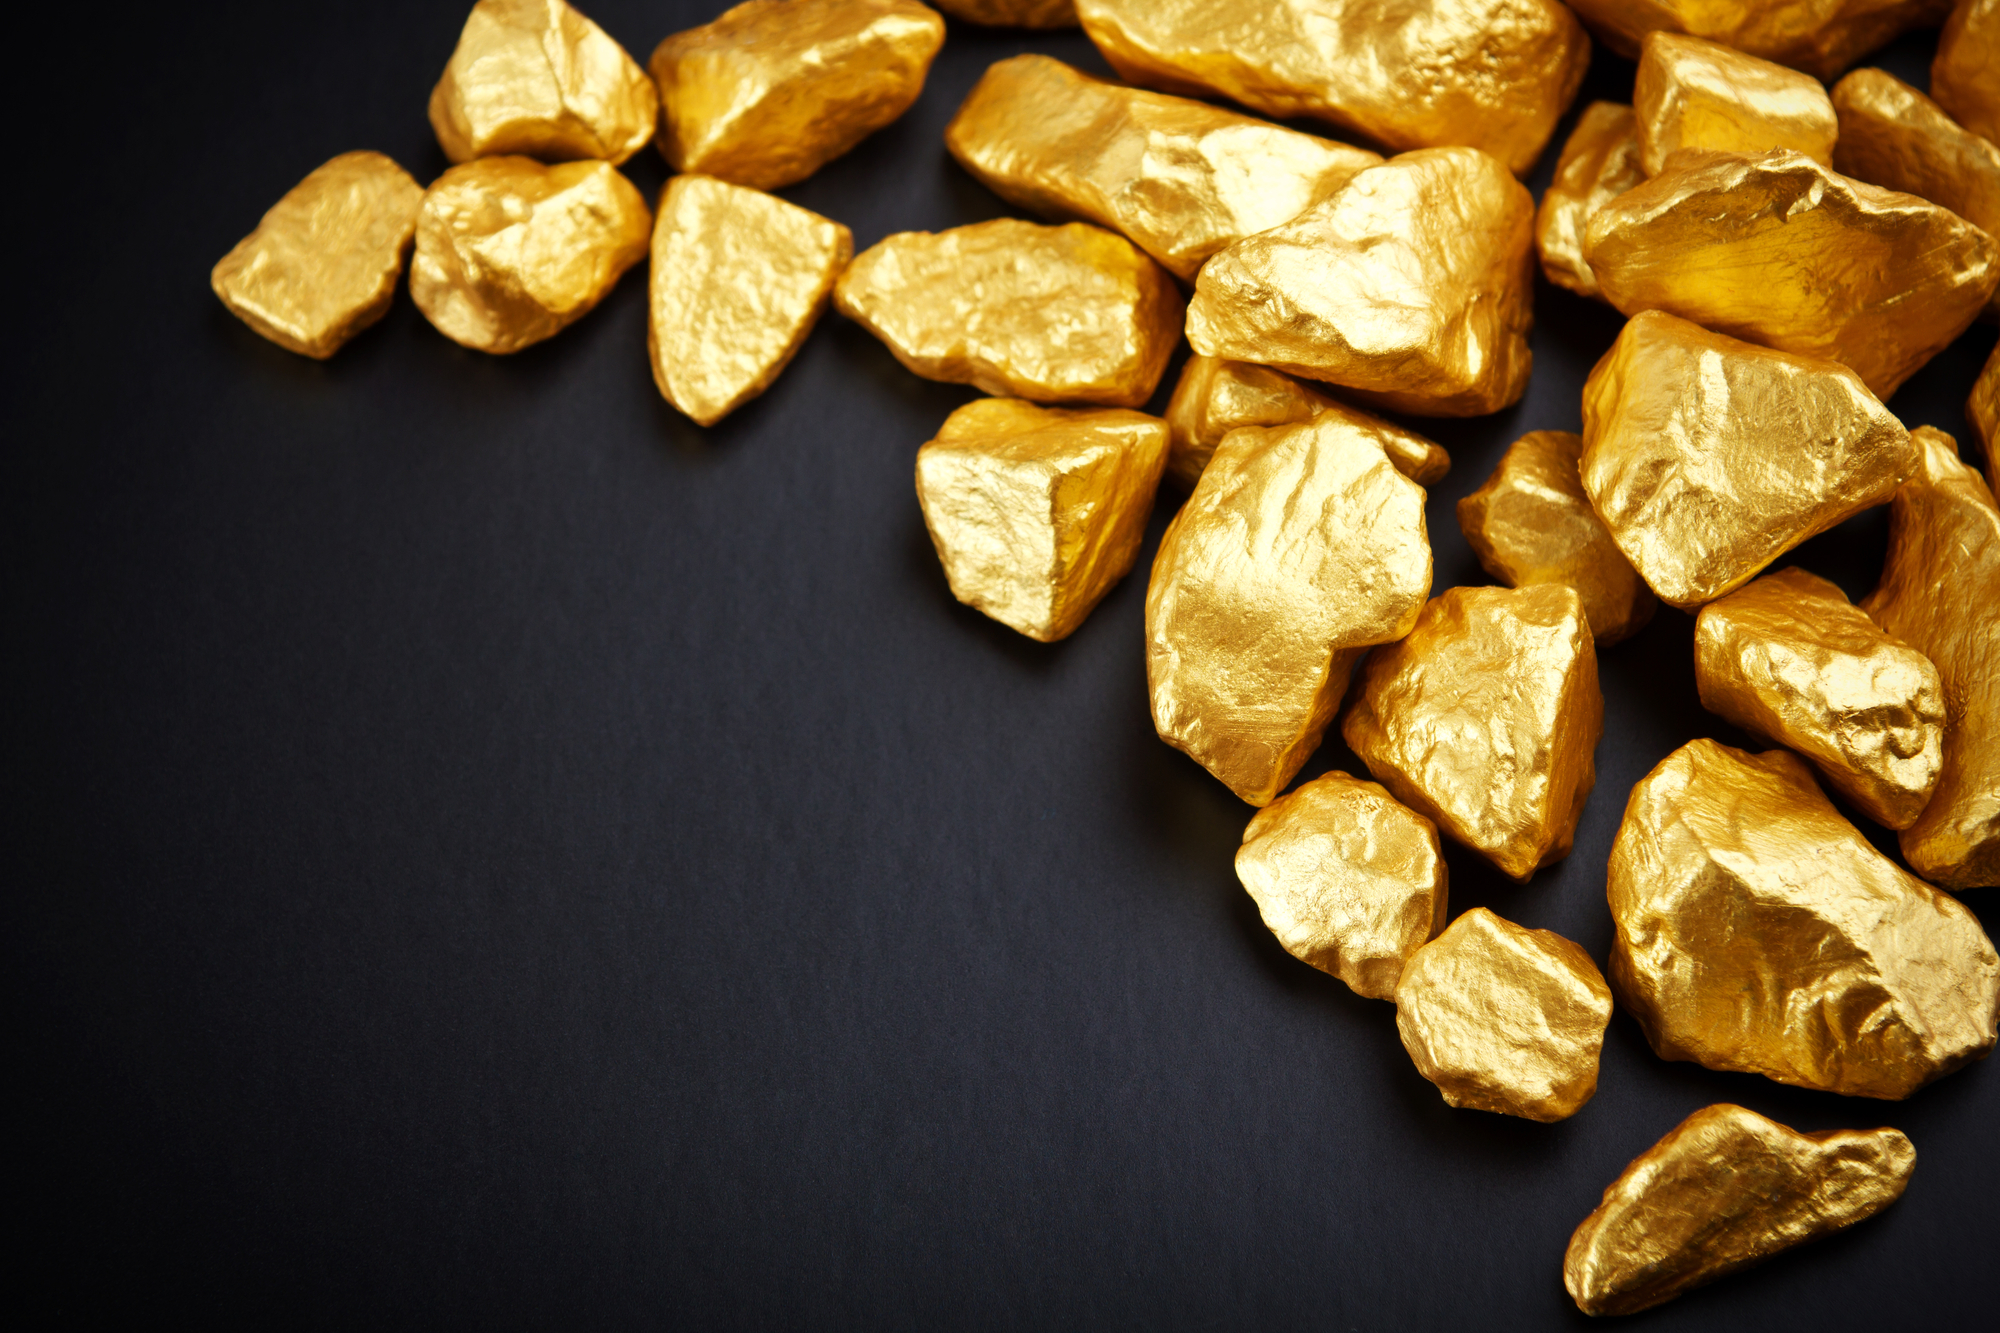 Gold Nuggets - Vitaly Korovin - Depositphotos 11250416 - 2000 1333